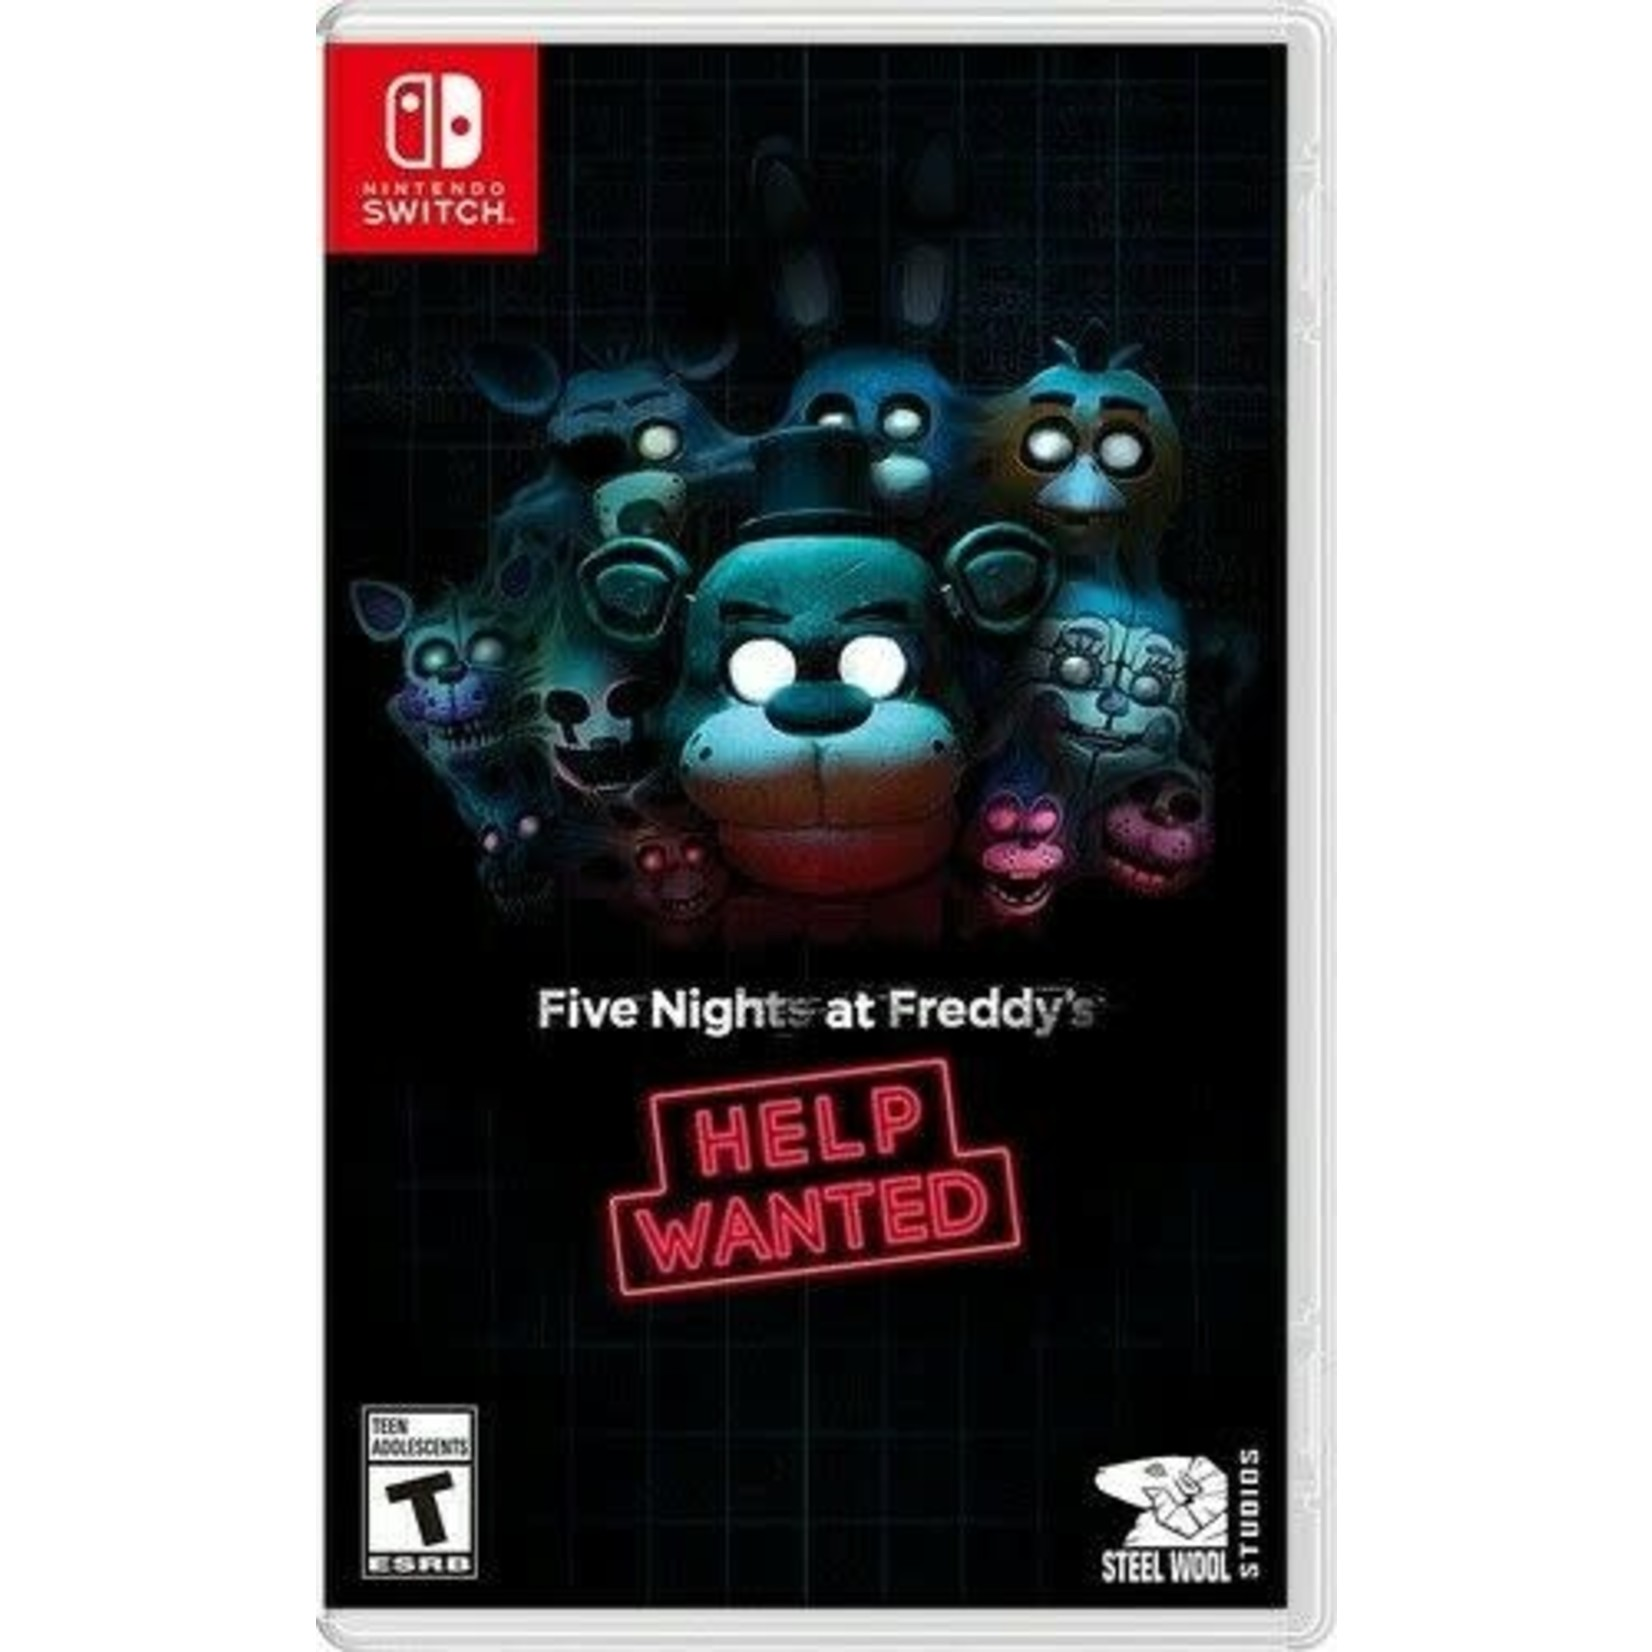 switchu-Five Nights at Freddy's Help Wanted